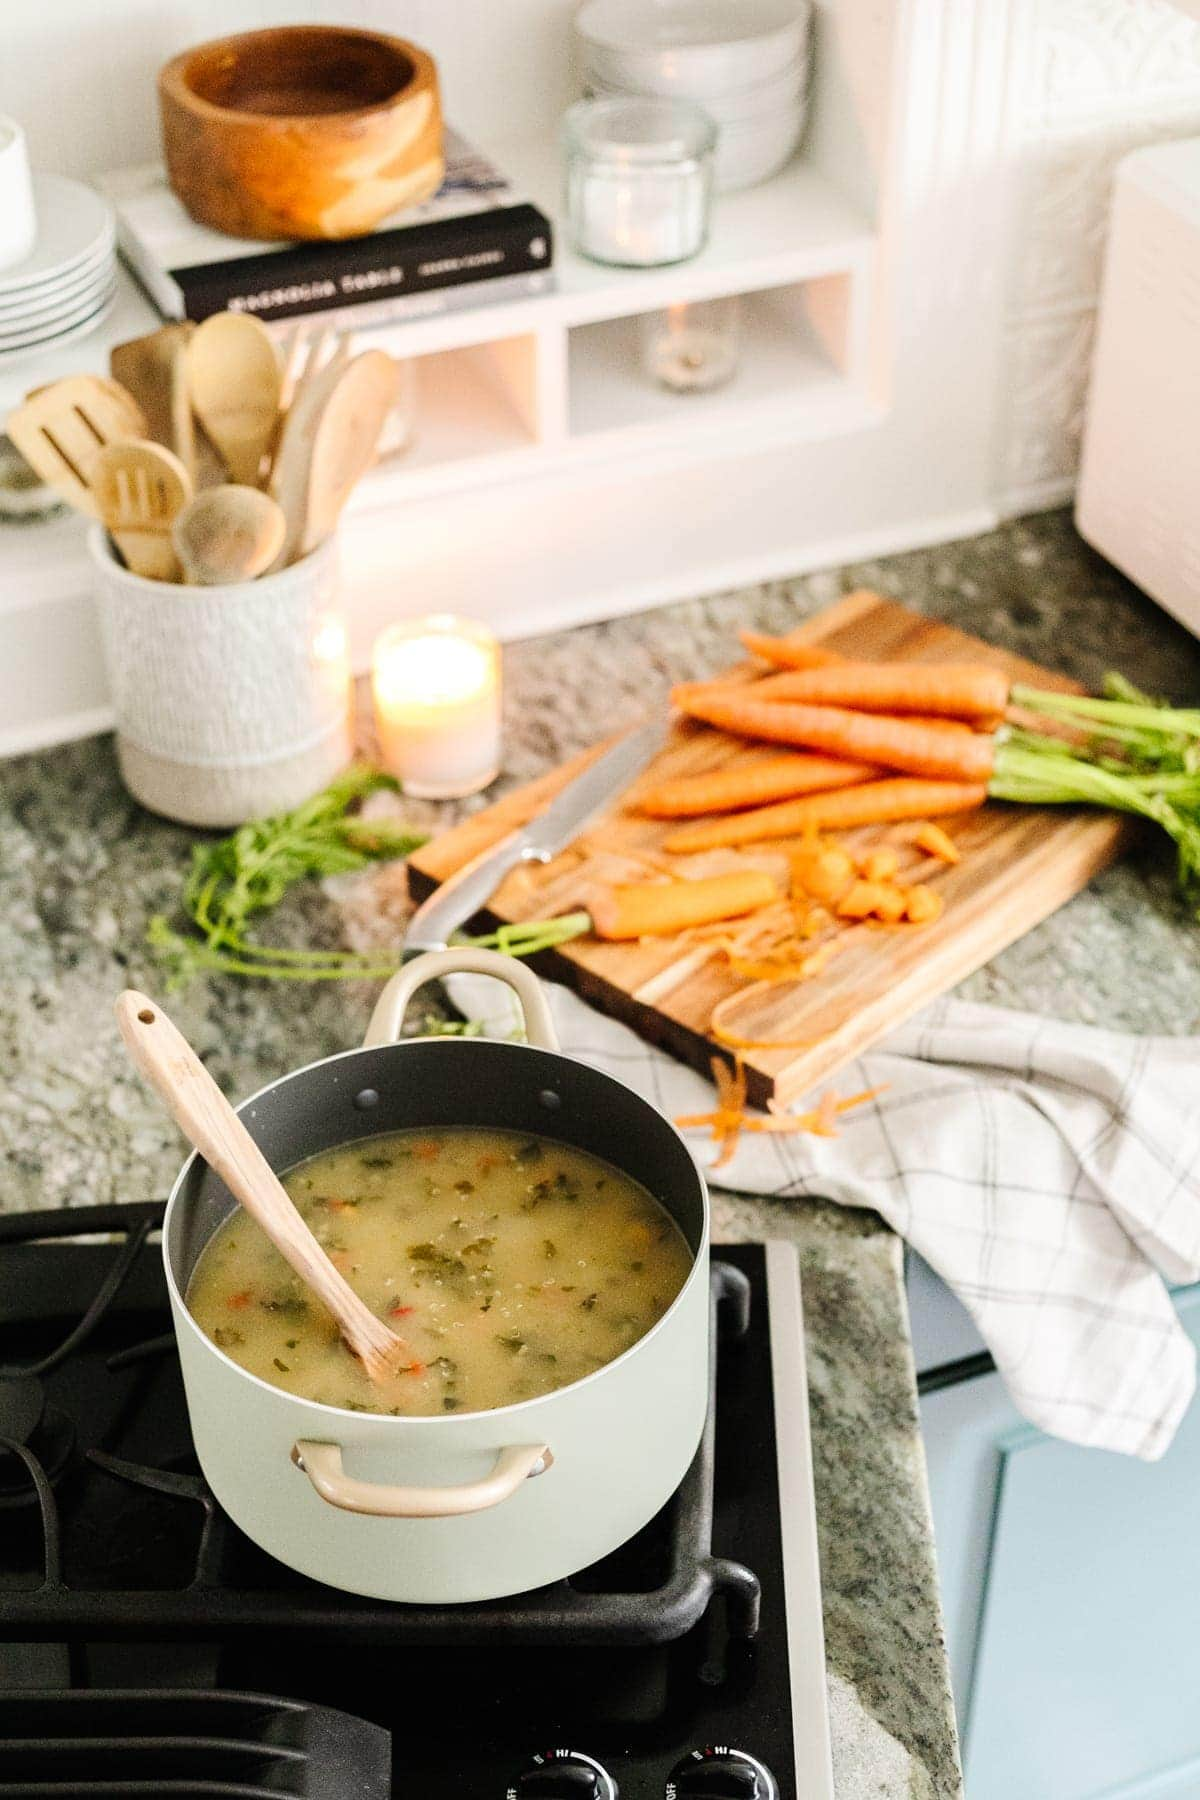 cottagecore style cookware for less